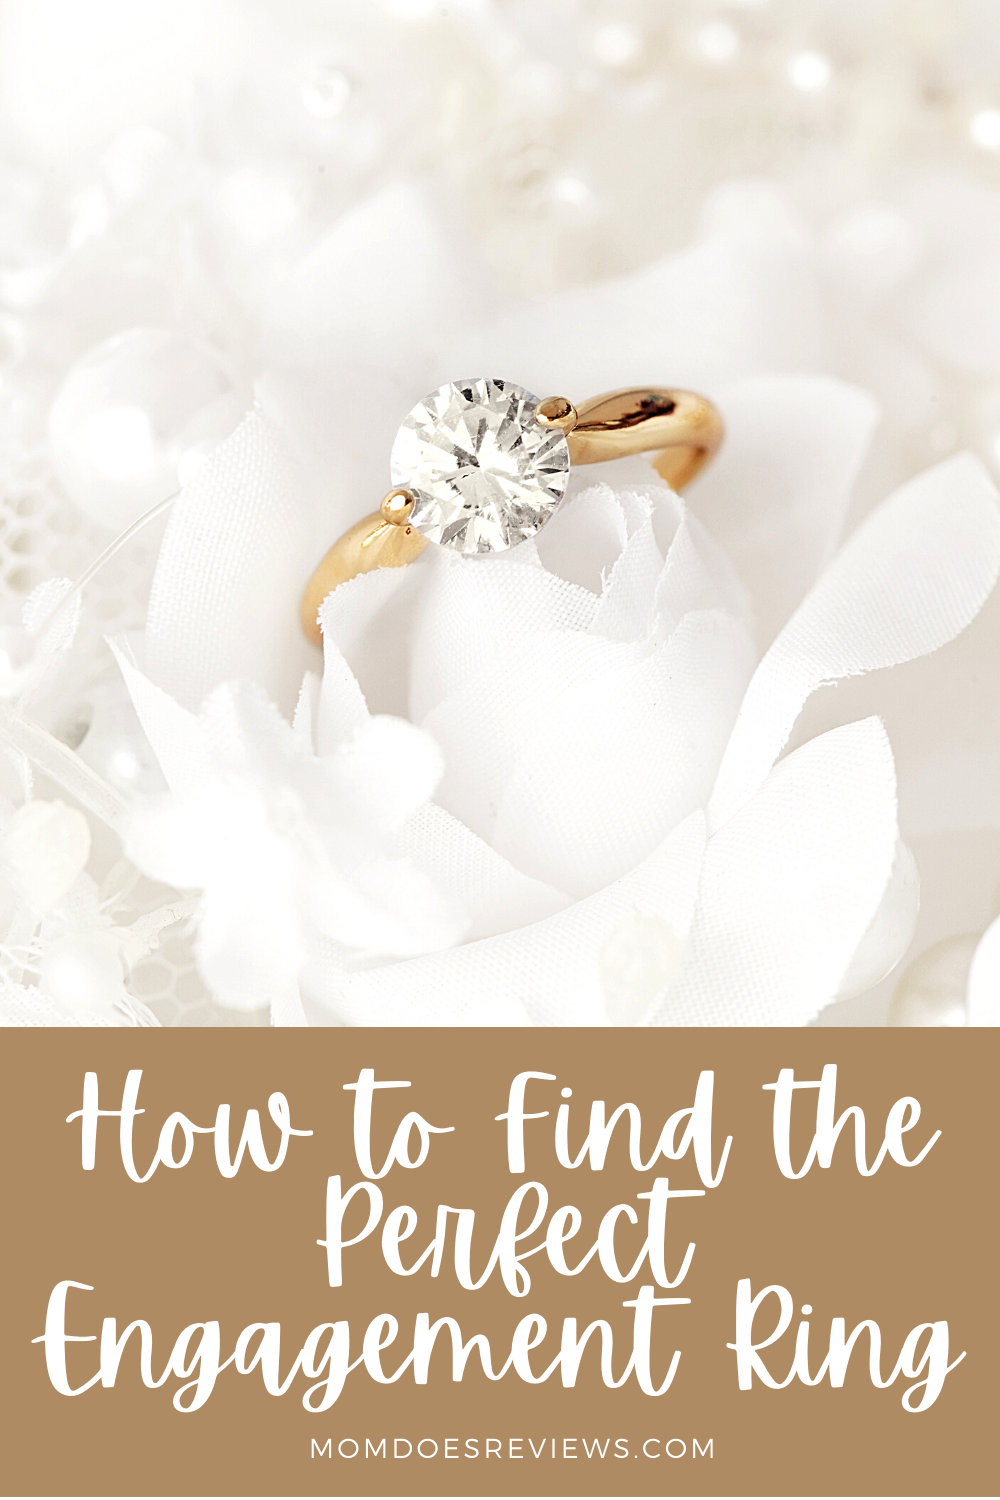 How to Find the Perfect Engagement Ring for the Big Day